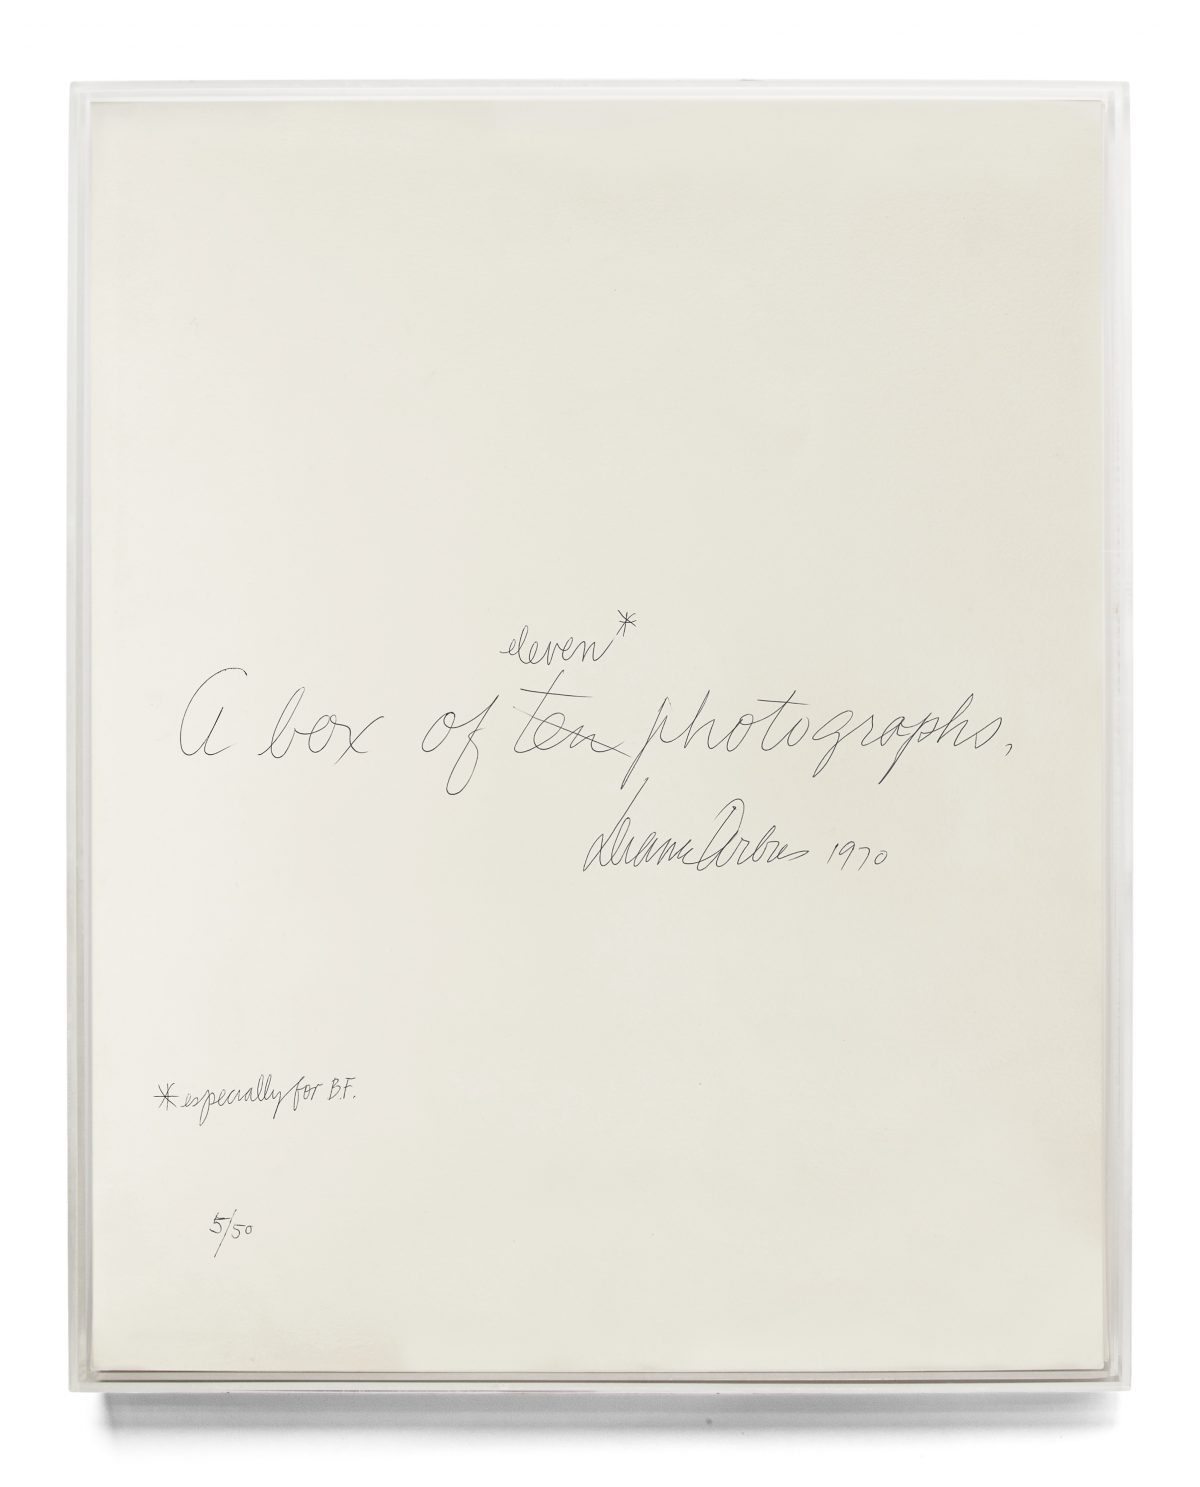 Diane Arbus and Marvin Israel, Lucite Box designed by Israel for A box of ten photographs, with cover sheet by Diane Arbus, 1970-71